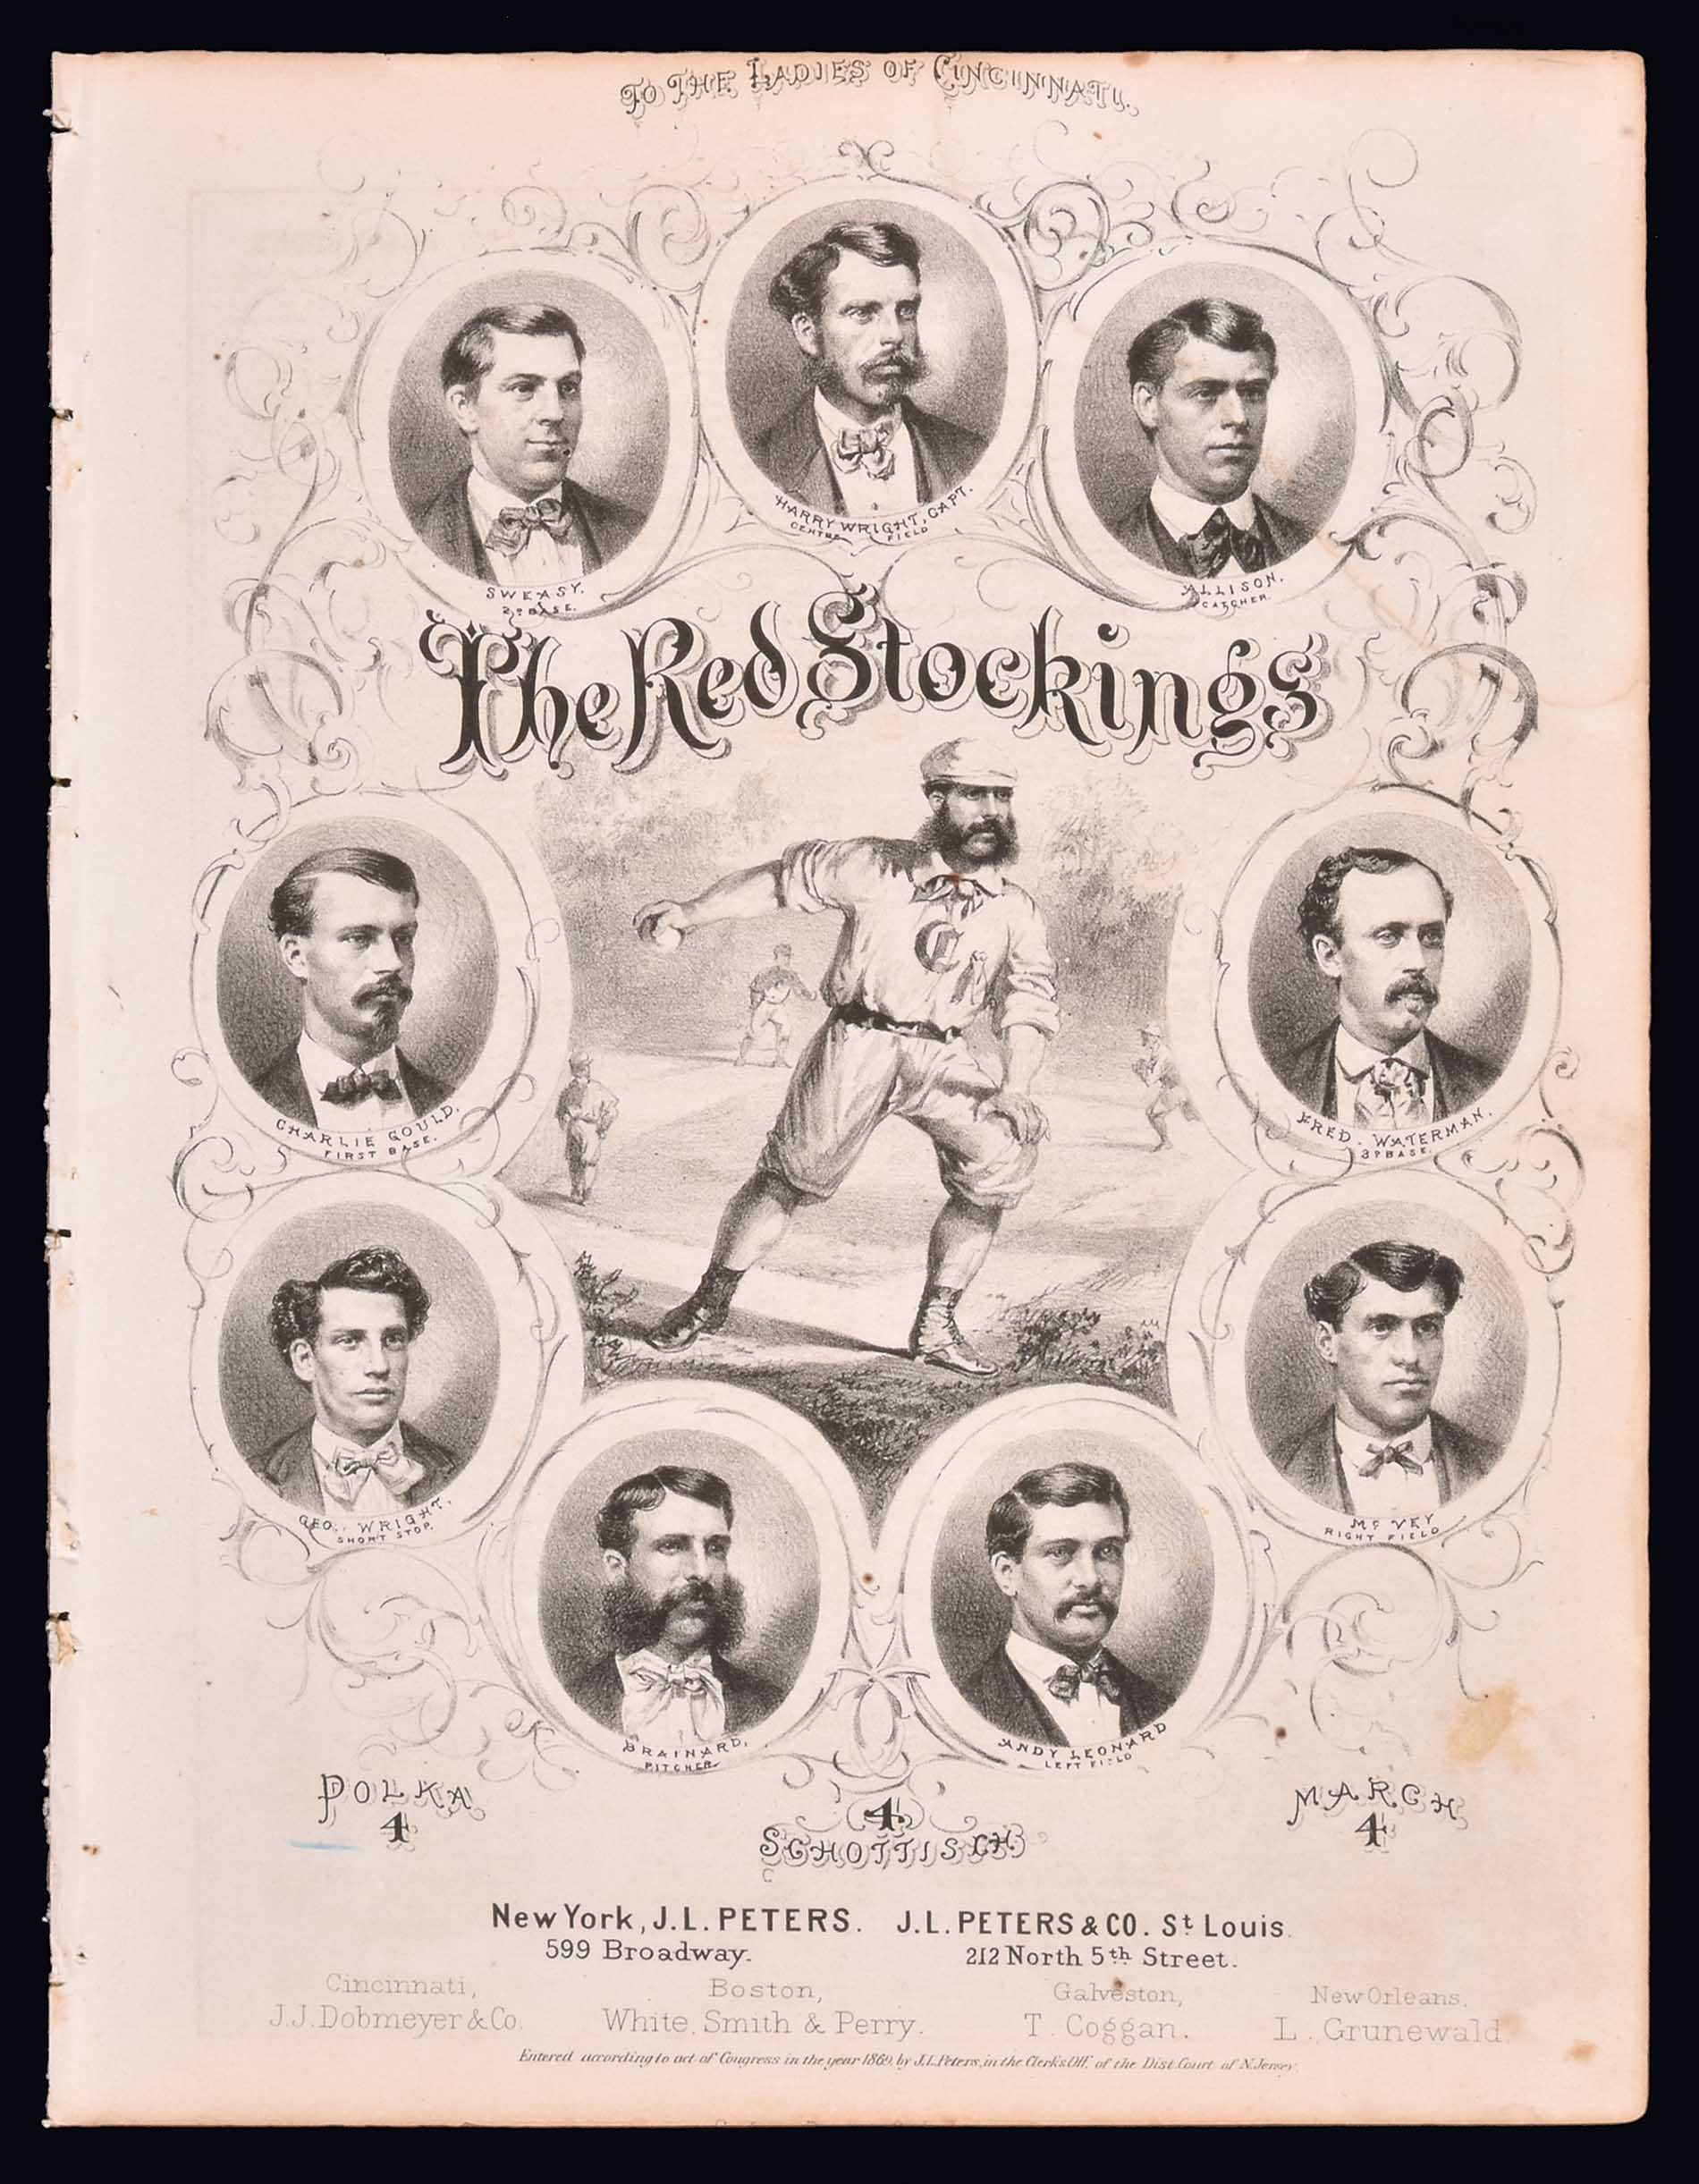 An 1869 copy of The Red Stockings sheet music, lauding a Cincinnati team of that name.